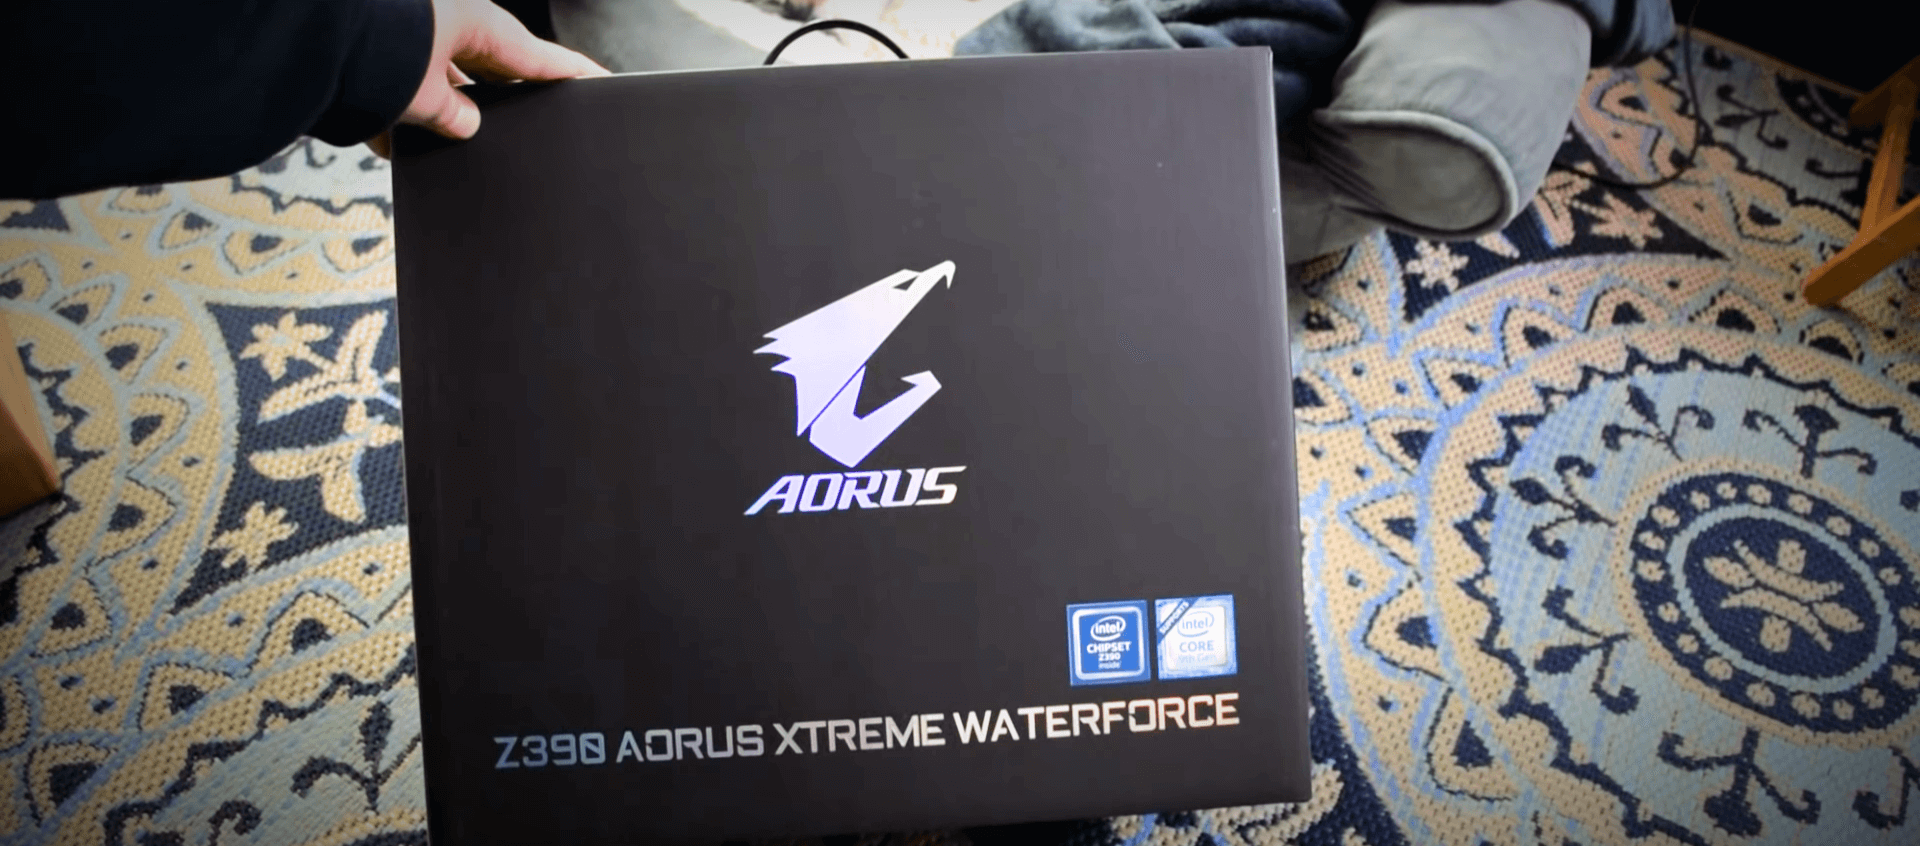 Z390 AORUS Xtreme Waterforce Unboxing